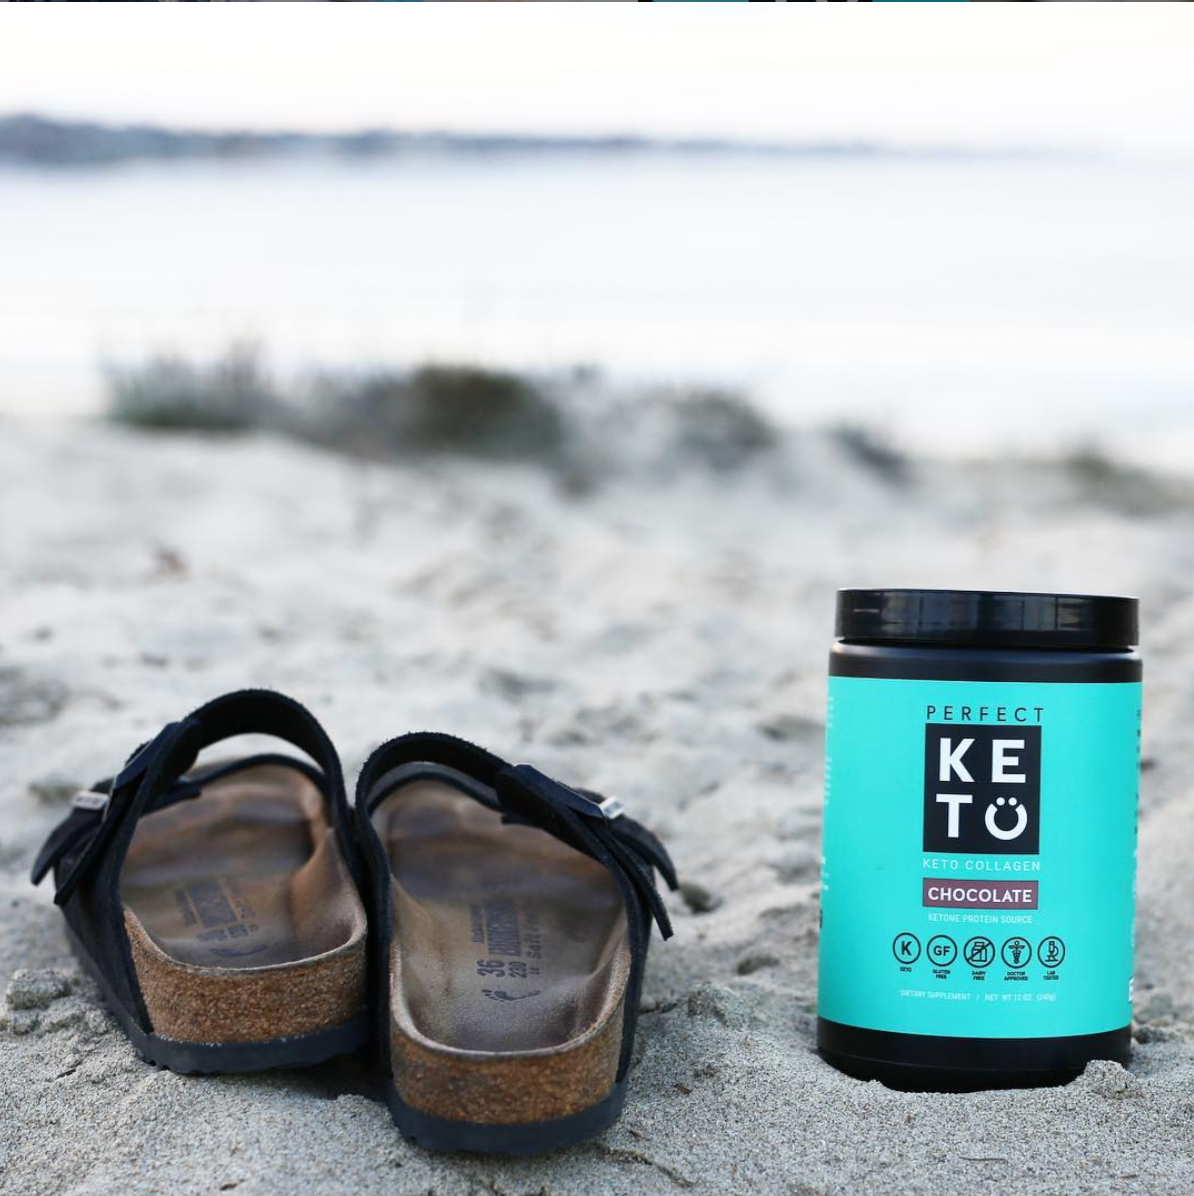 Morning walk + Keto Collagen is always a great way to start the day ☕️ 👉🏻 https://t.co/0Y9Lv15ViC  #PerfectKeto #exogenous #ketones #nutrition #ketogenic #keto #diet #KetoCollagen #chocolate #health #wellness #movement #motivation #drink #collagen #strong #morning #walks #beach https://t.co/Lo9gAIoglR